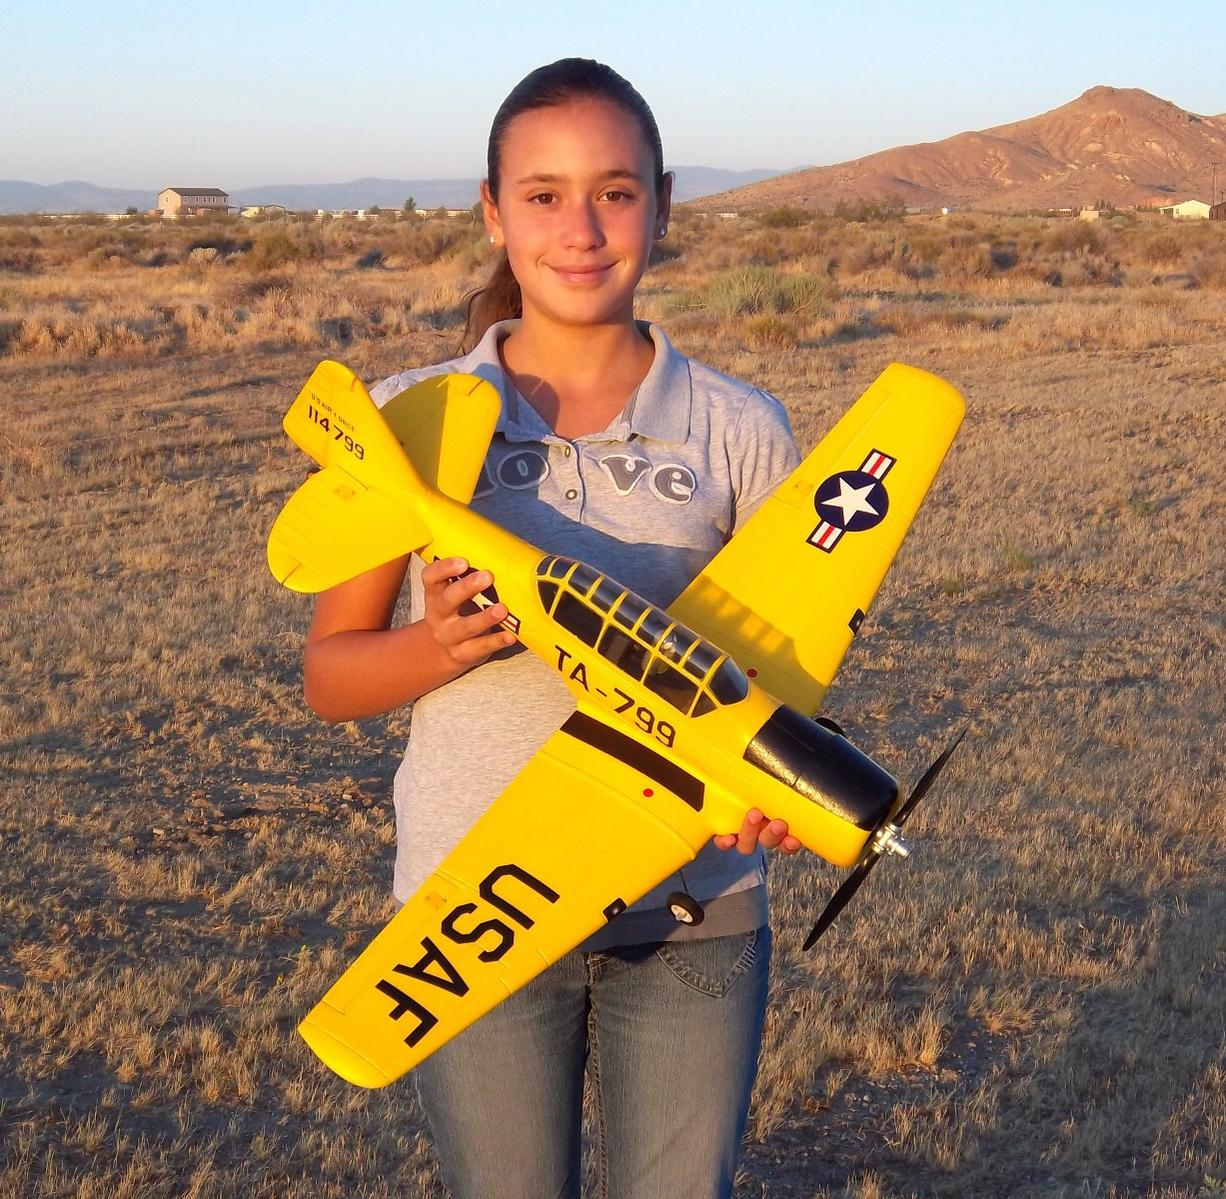 Name: Airfield 800mm AT-6 016.jpg Views: 623 Size: 281.6 KB Description: My daughter Evelyn holding the Airfield 800mm AT-6 Texan